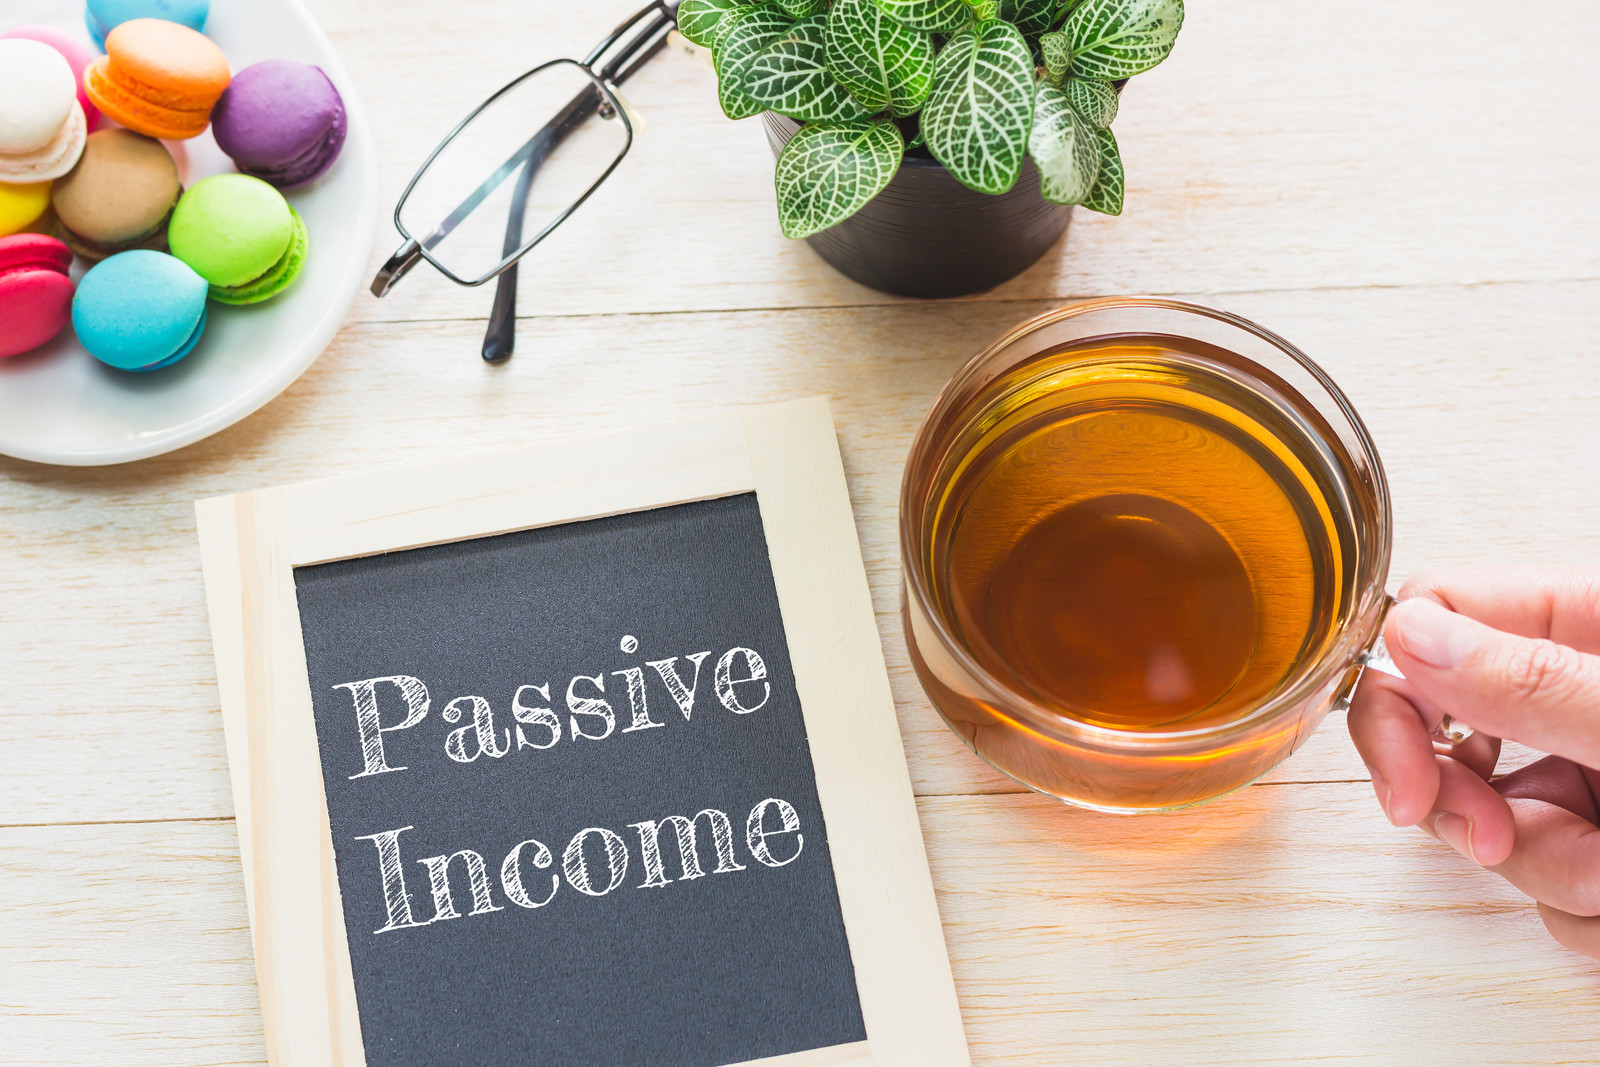 Passive income message written on a blackboard. macaroons and glass tea on table nearby